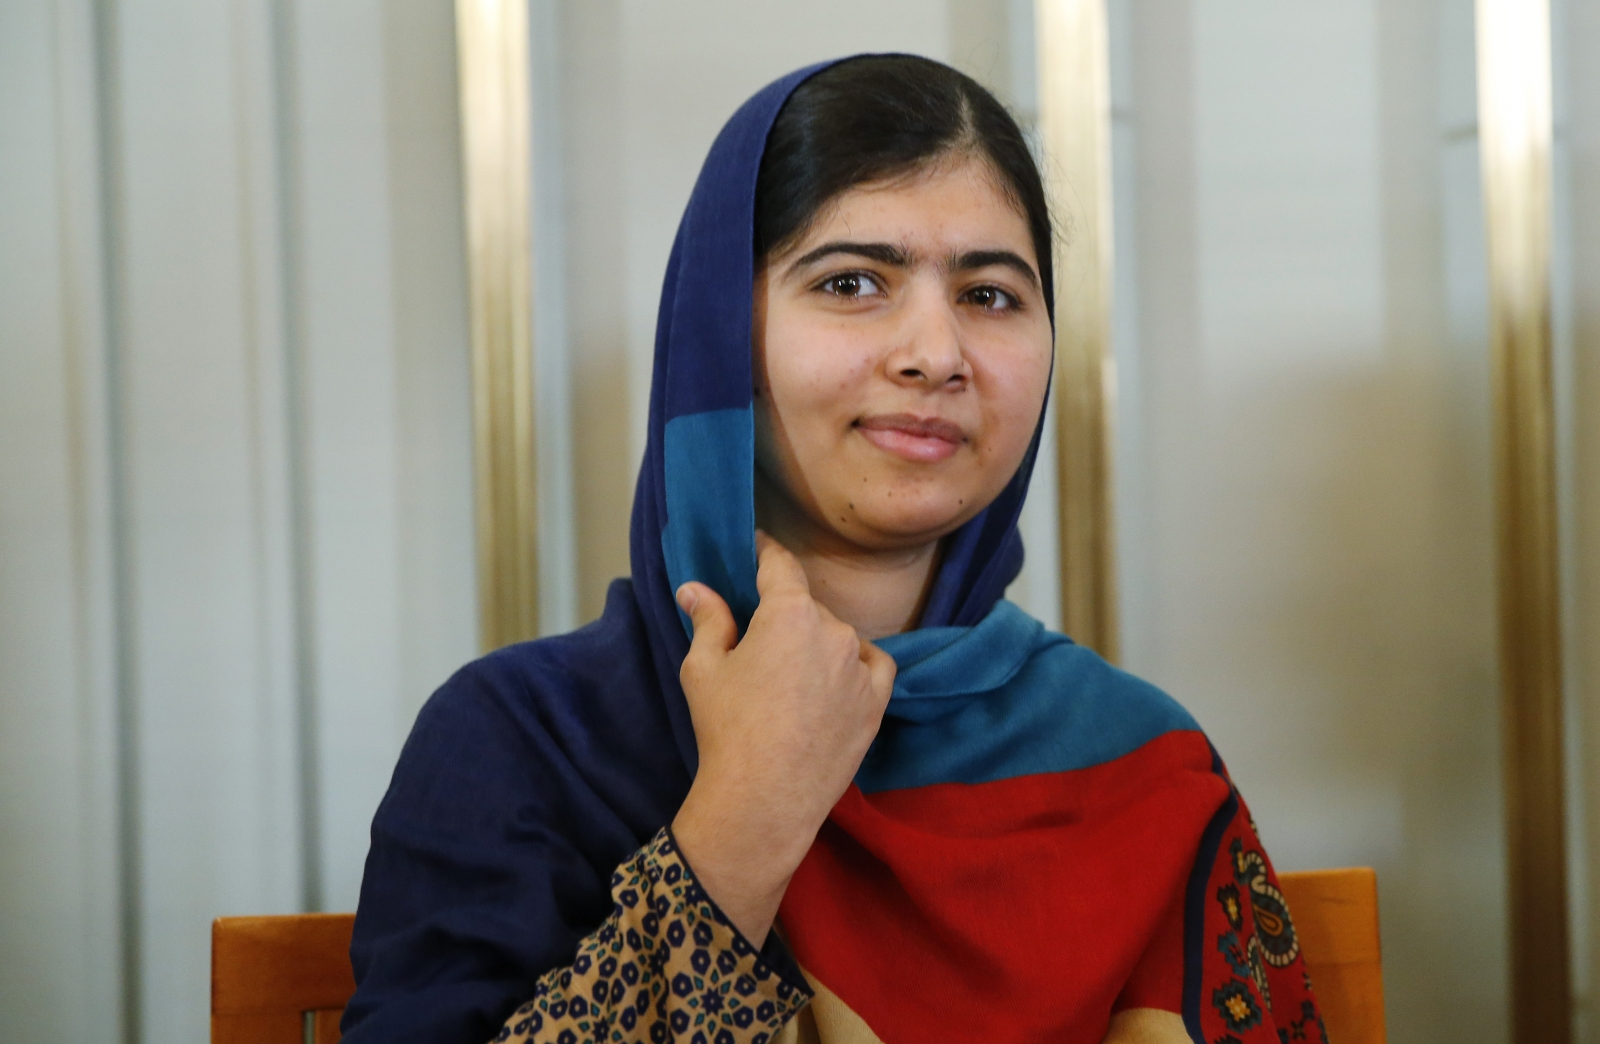 Nobel Peace Prize winner Malala Yousafzai revealed wish to be Pakistan Prime Minister